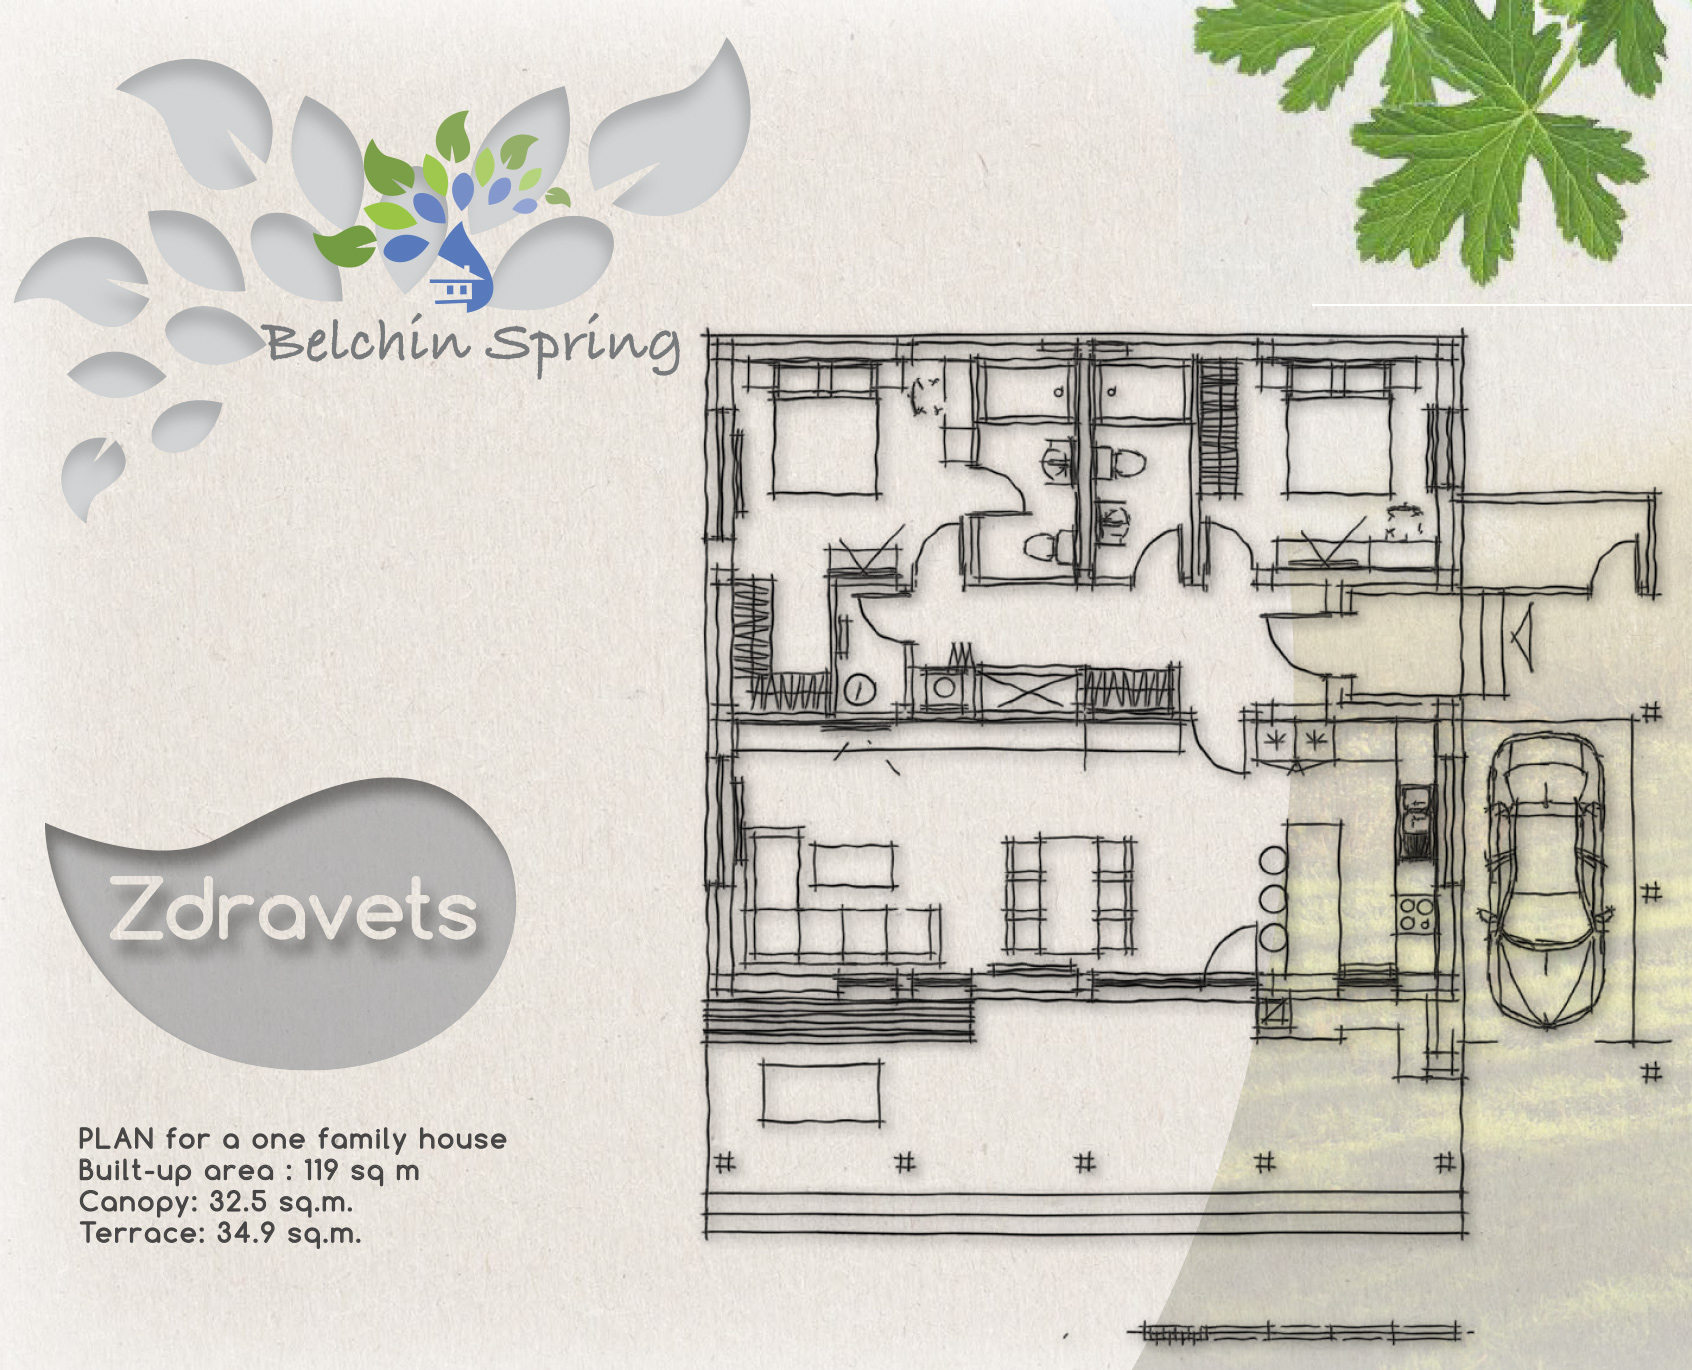 Geranium - A one family house, Built-up area: 119 sq. m., Canopy: 32.5 sq. m., Terrace: 34.9 sq. m.